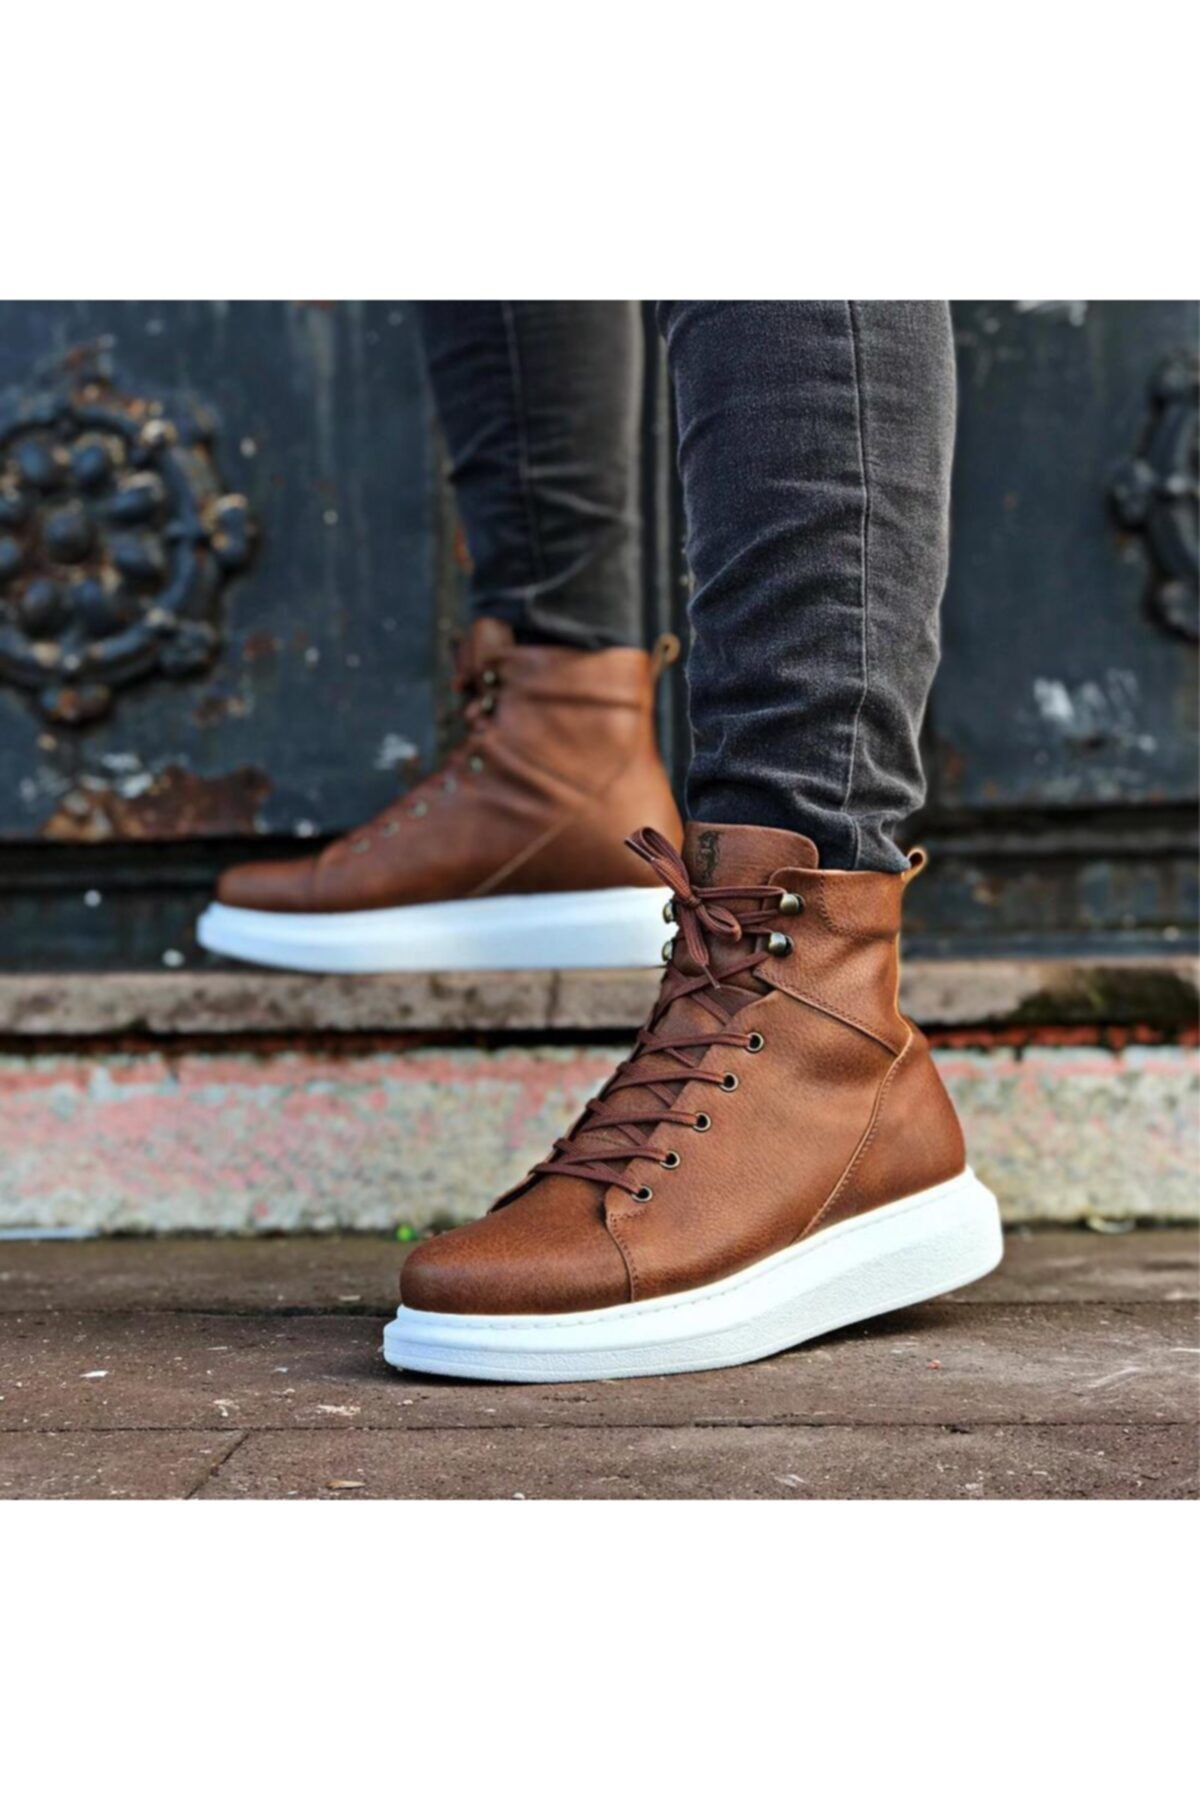 High Sole Shoes B-080 Tan 4 color sneaker model boat style stylish fashion casual platform heel van shoelaces chaussure